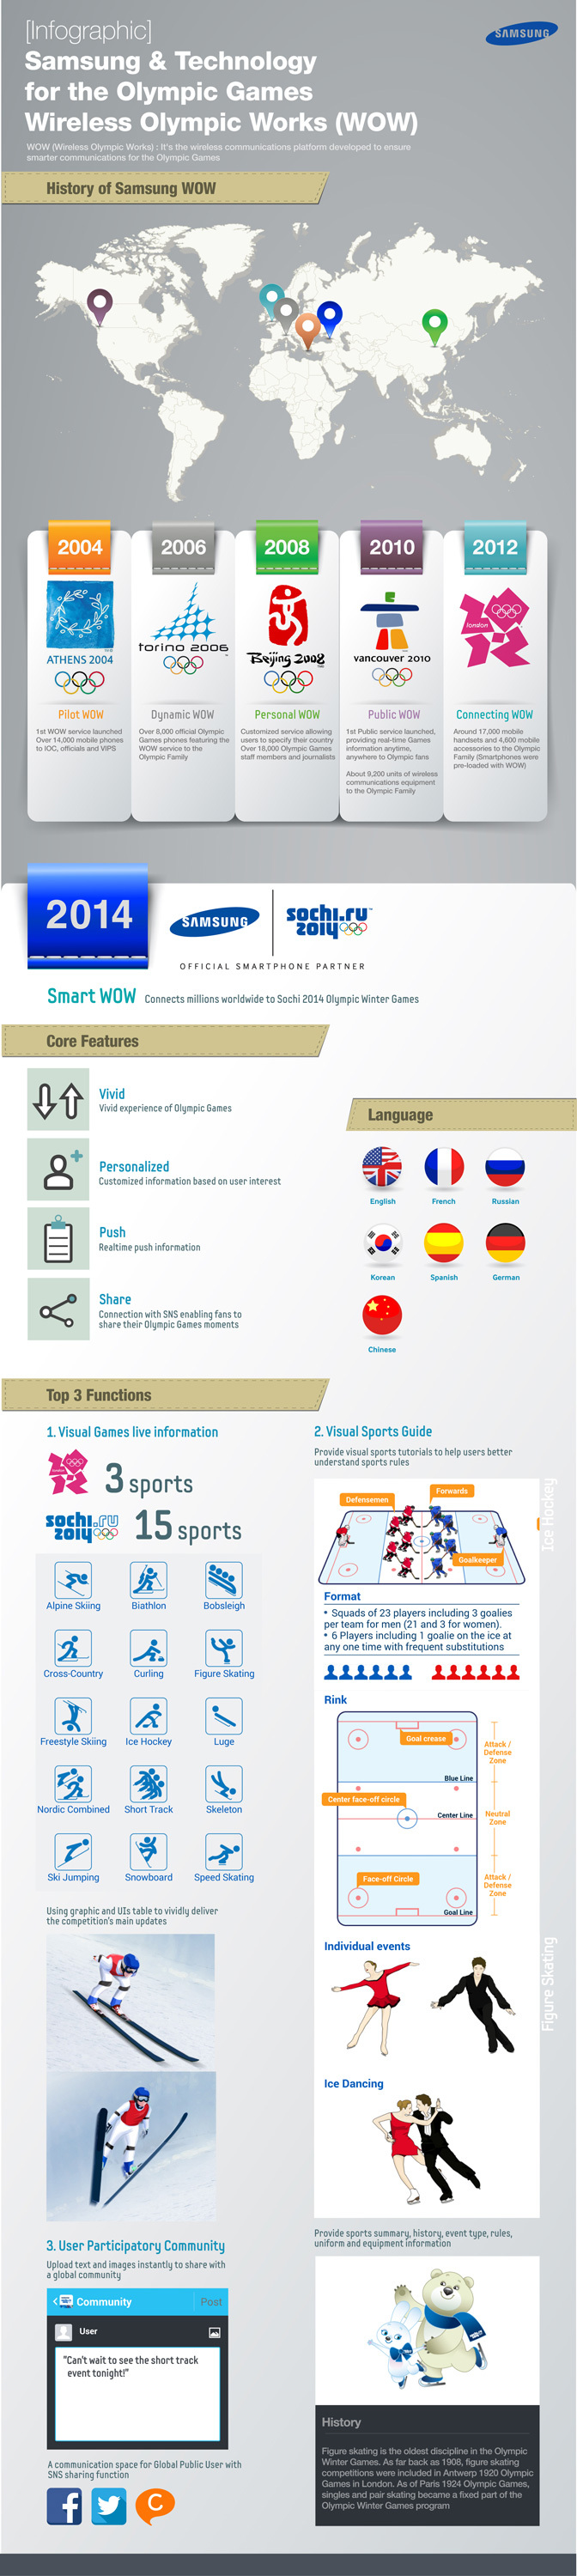 Samsung's WOW (Wireless Olympic Works) service was first launched during the Athens 2004 Olympic Games for the Olympic Family and has since evolved into a must-have resource for officials, attendees and fans worldwide. (Graphic: Business Wire)